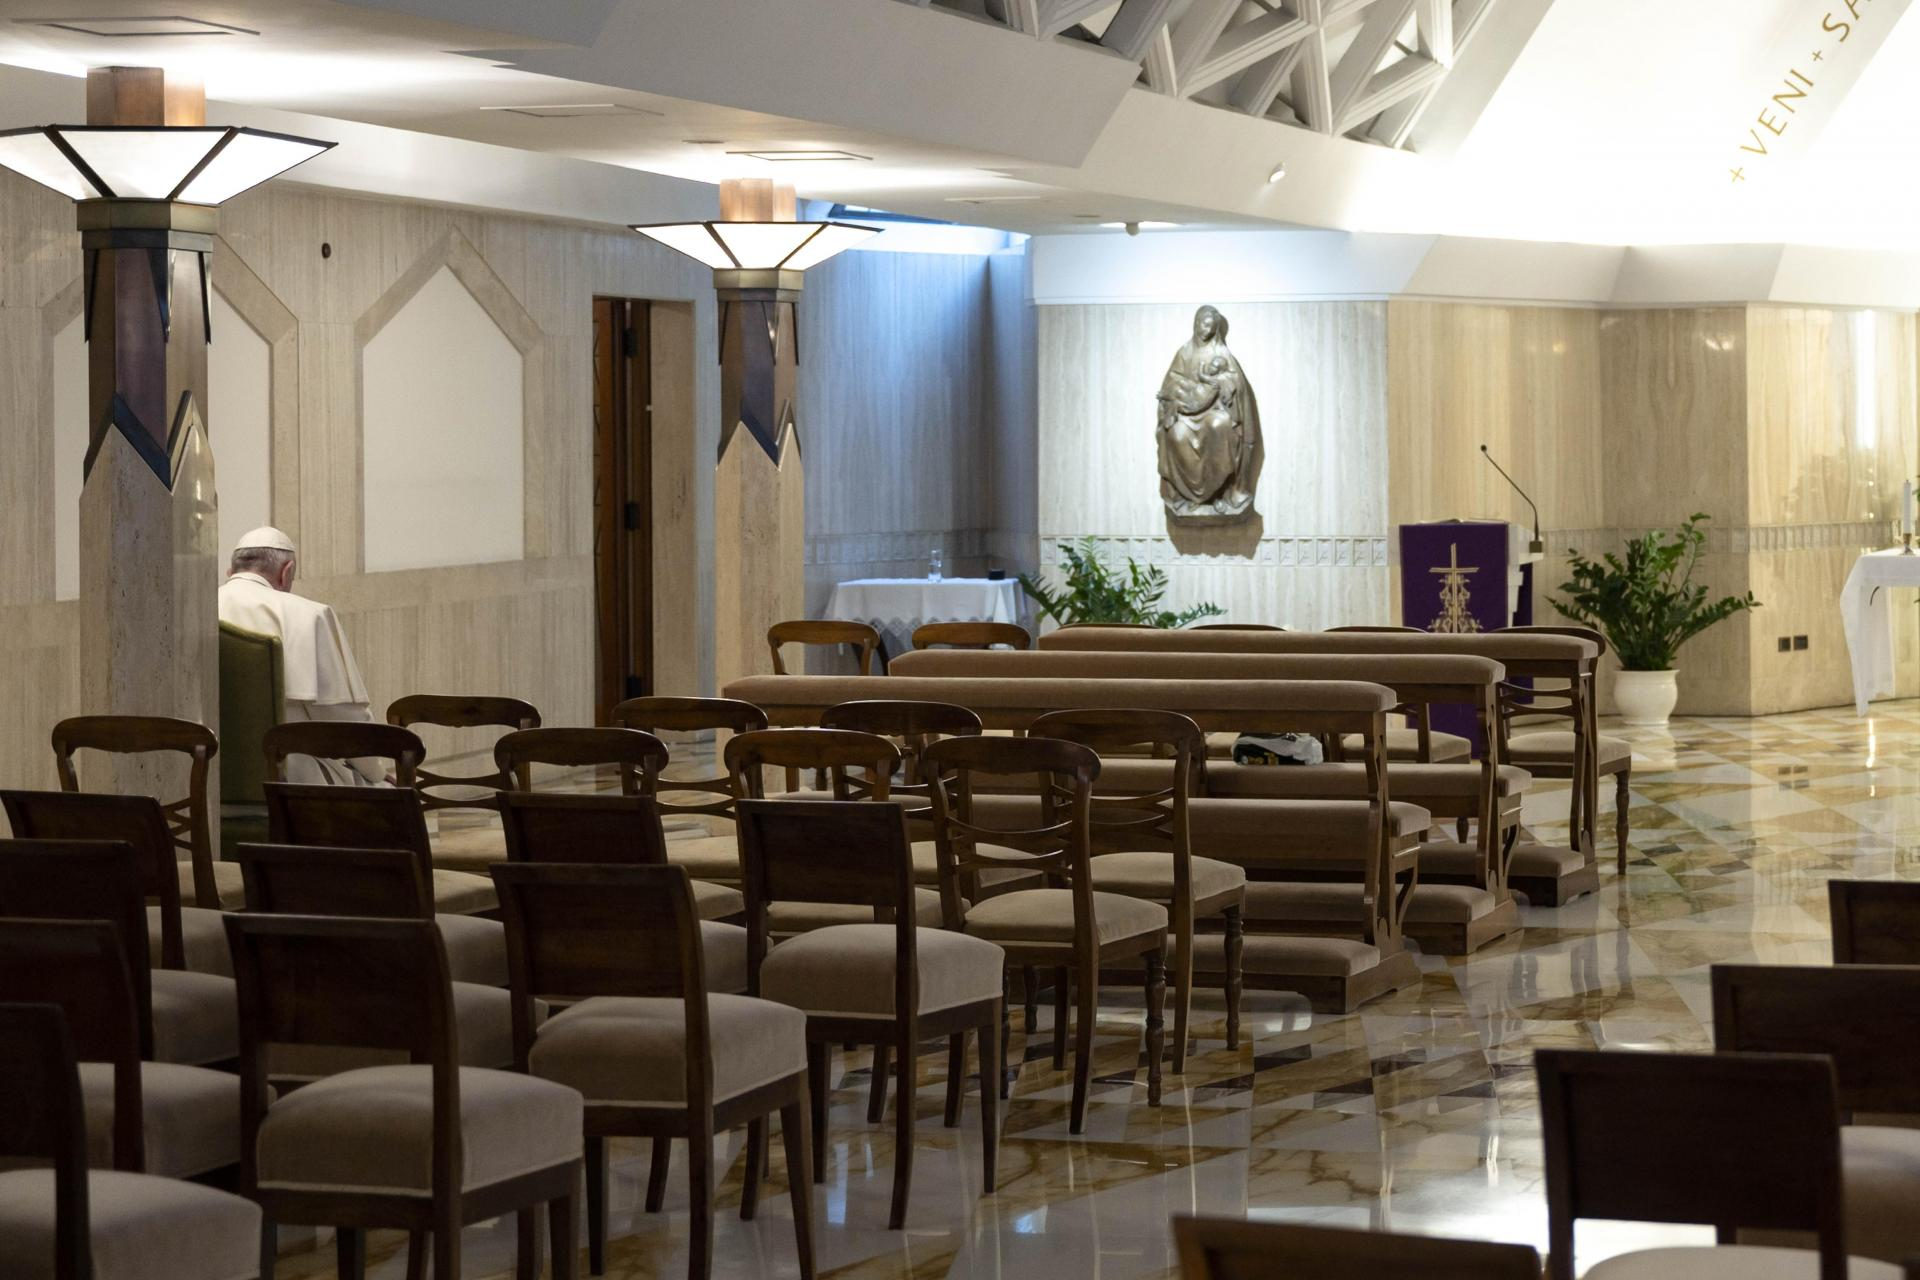 Pope Francis (Rear L) gathering his thoughts while celebrating a daily mass alone in the Santa Marta chapel at the Vatican.